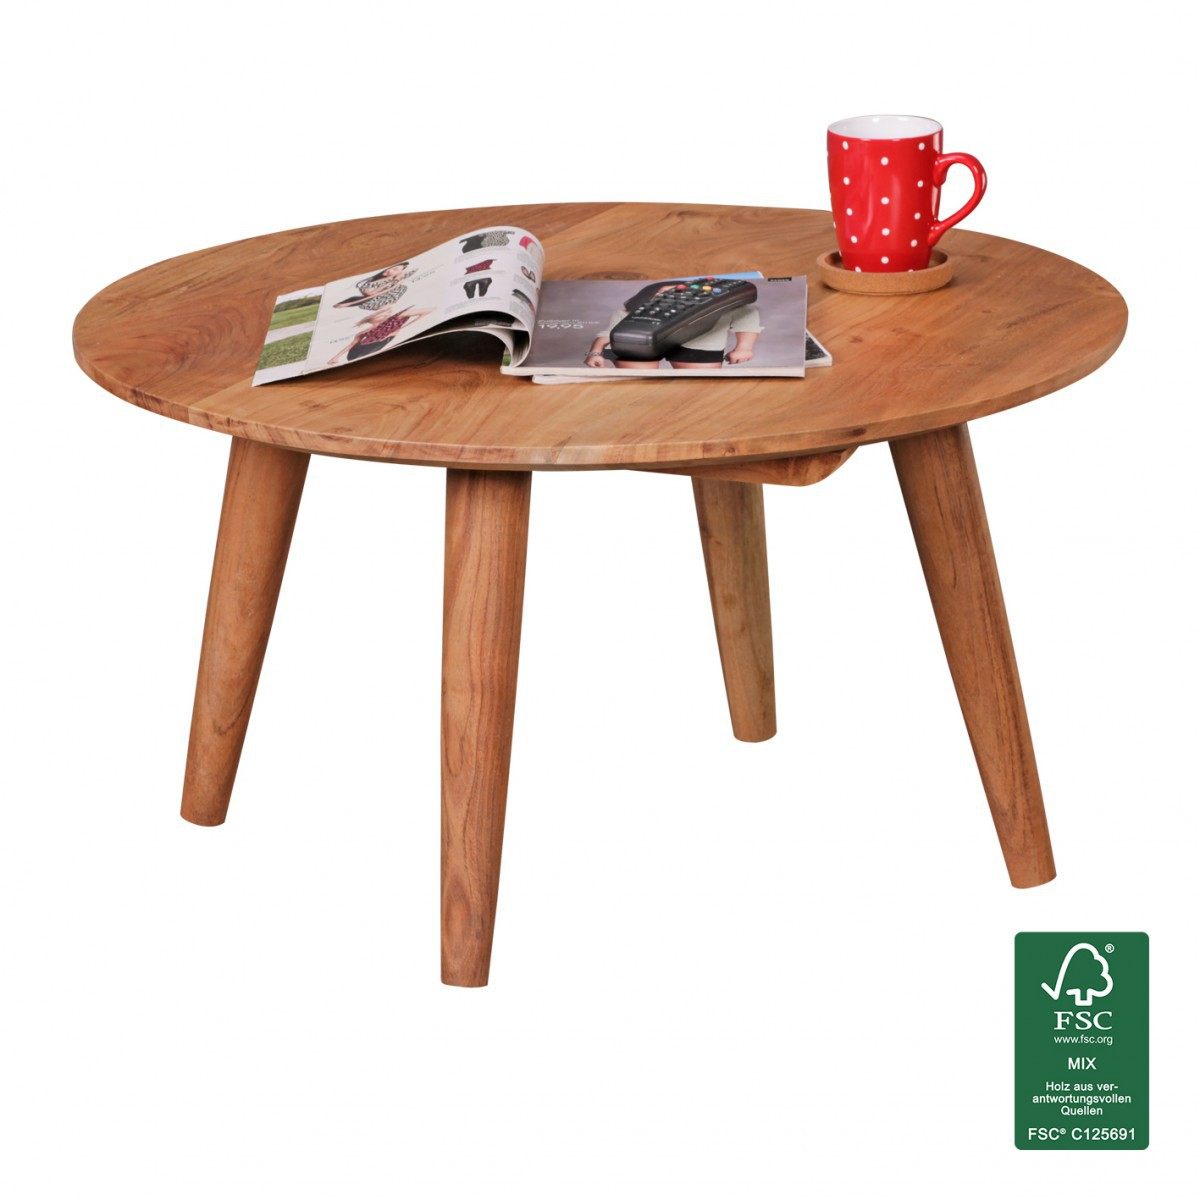 Finebuy table basse en bois massif acacia table basse for Table ronde en bois ikea